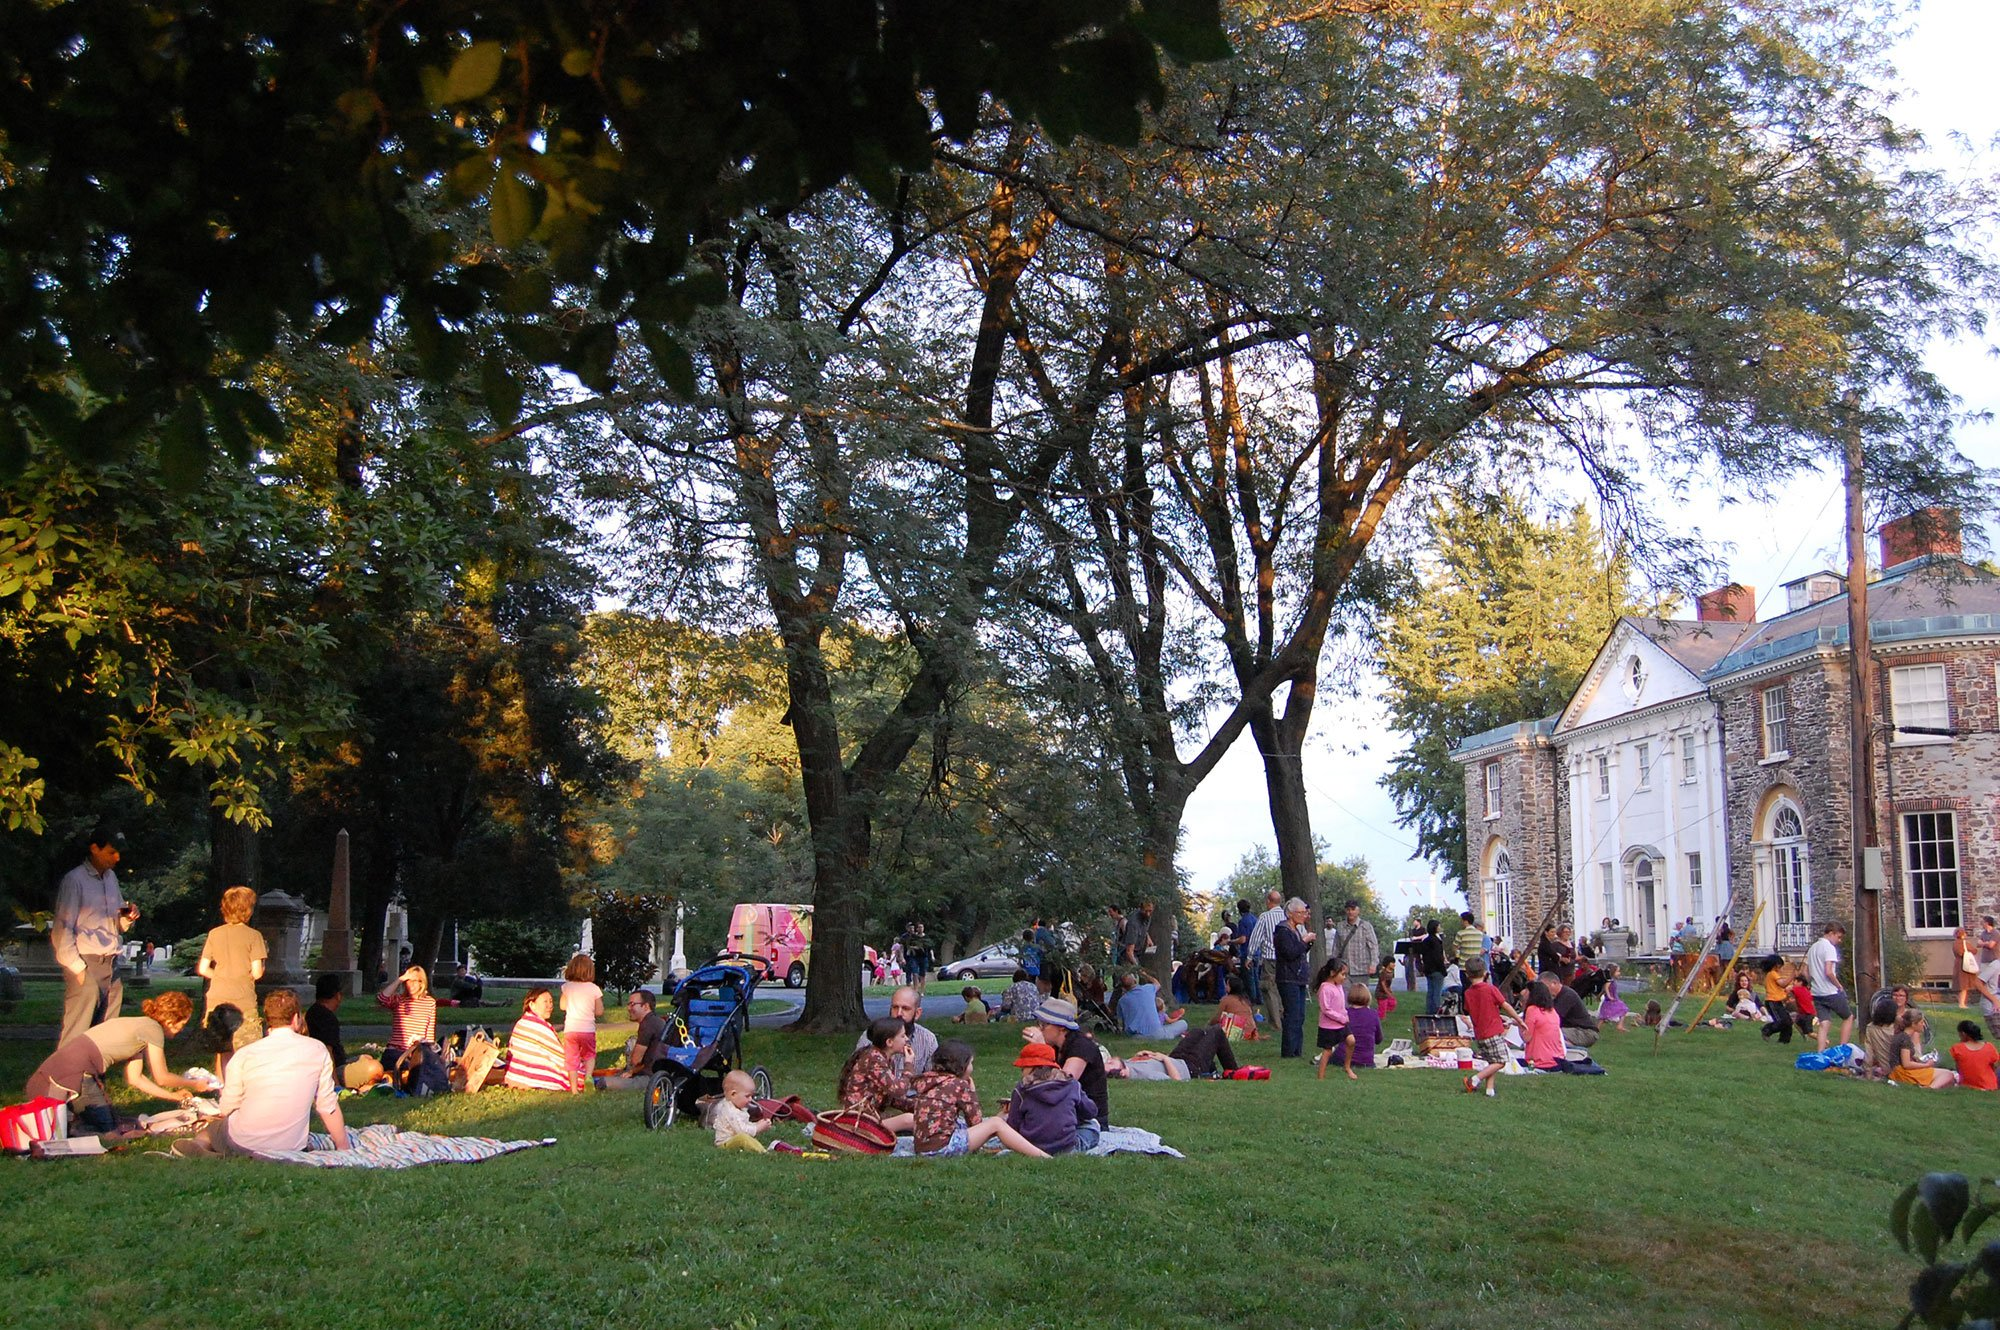 Visitors gather on the back lawn of the Woodlands mansion.